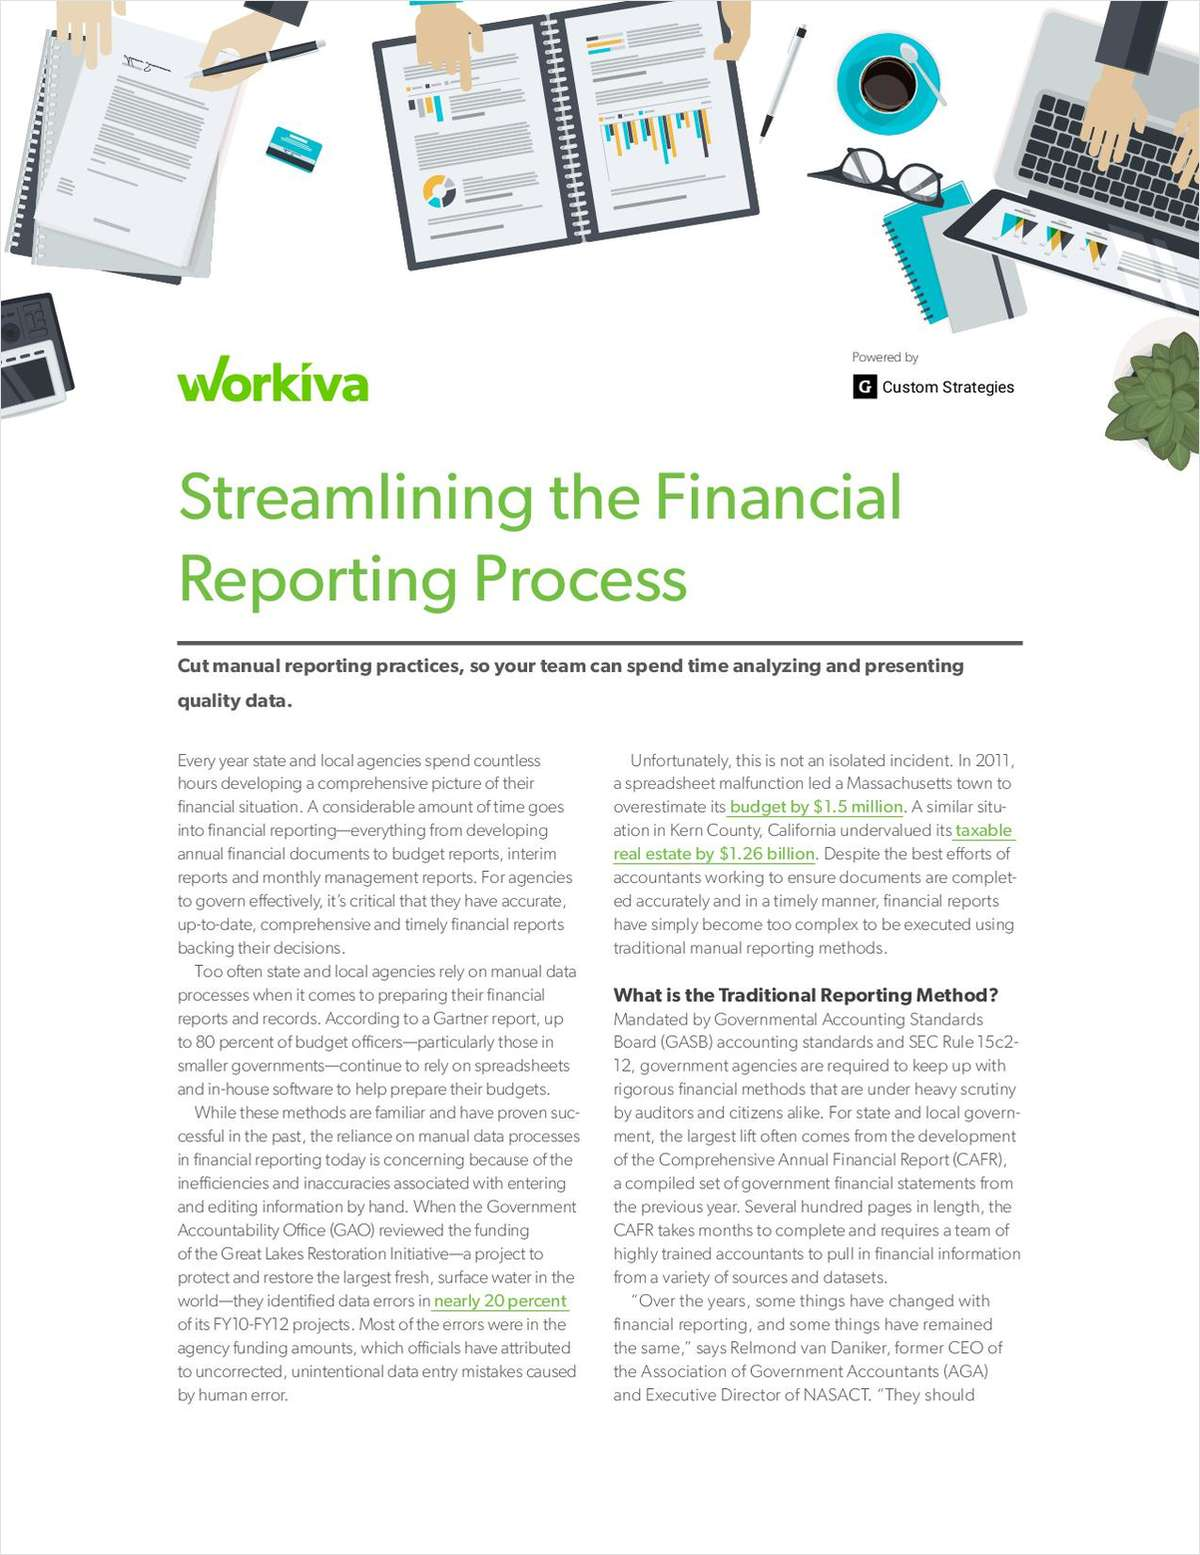 How to Streamline the Financial Reporting Process in Government